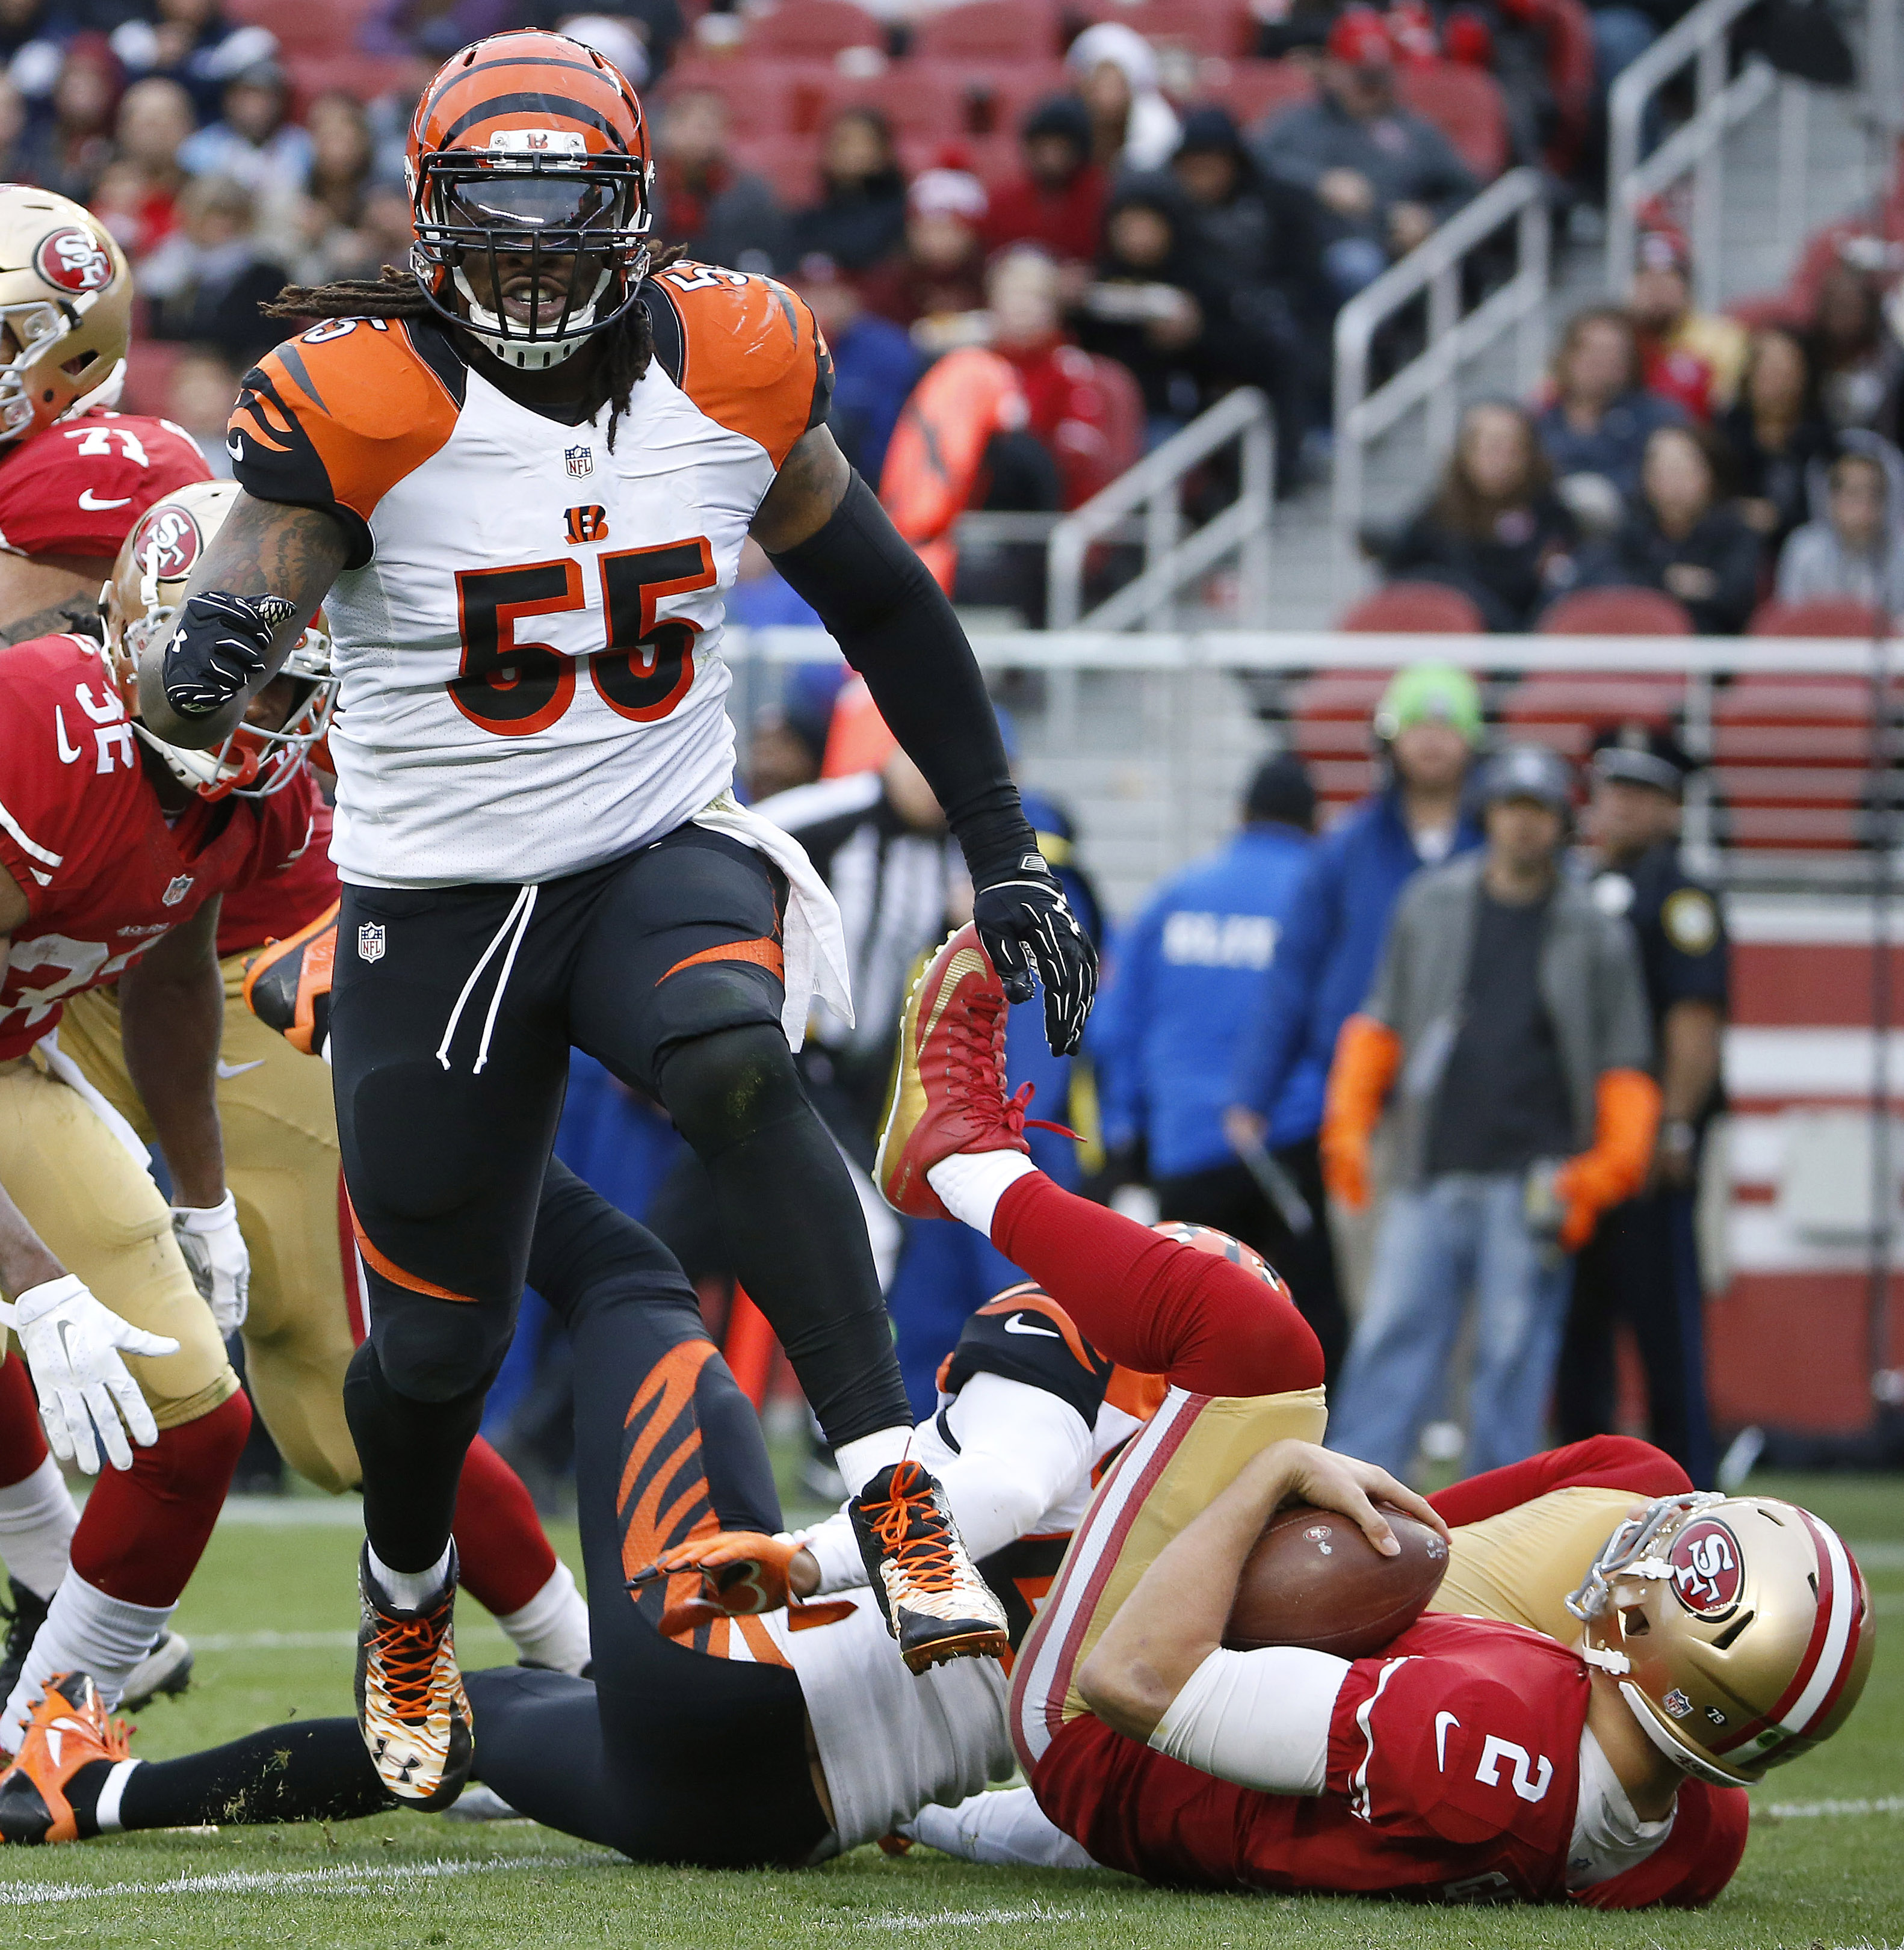 Cincinnati Bengals outside linebacker Vontaze Burfict (55) reacts after sacking San Francisco 49ers quarterback Blaine Gabbert (2) during the first half of an NFL football game in Santa Clara, Calif., Sunday, Dec. 20, 2015. (AP Photo/Tony Avelar)